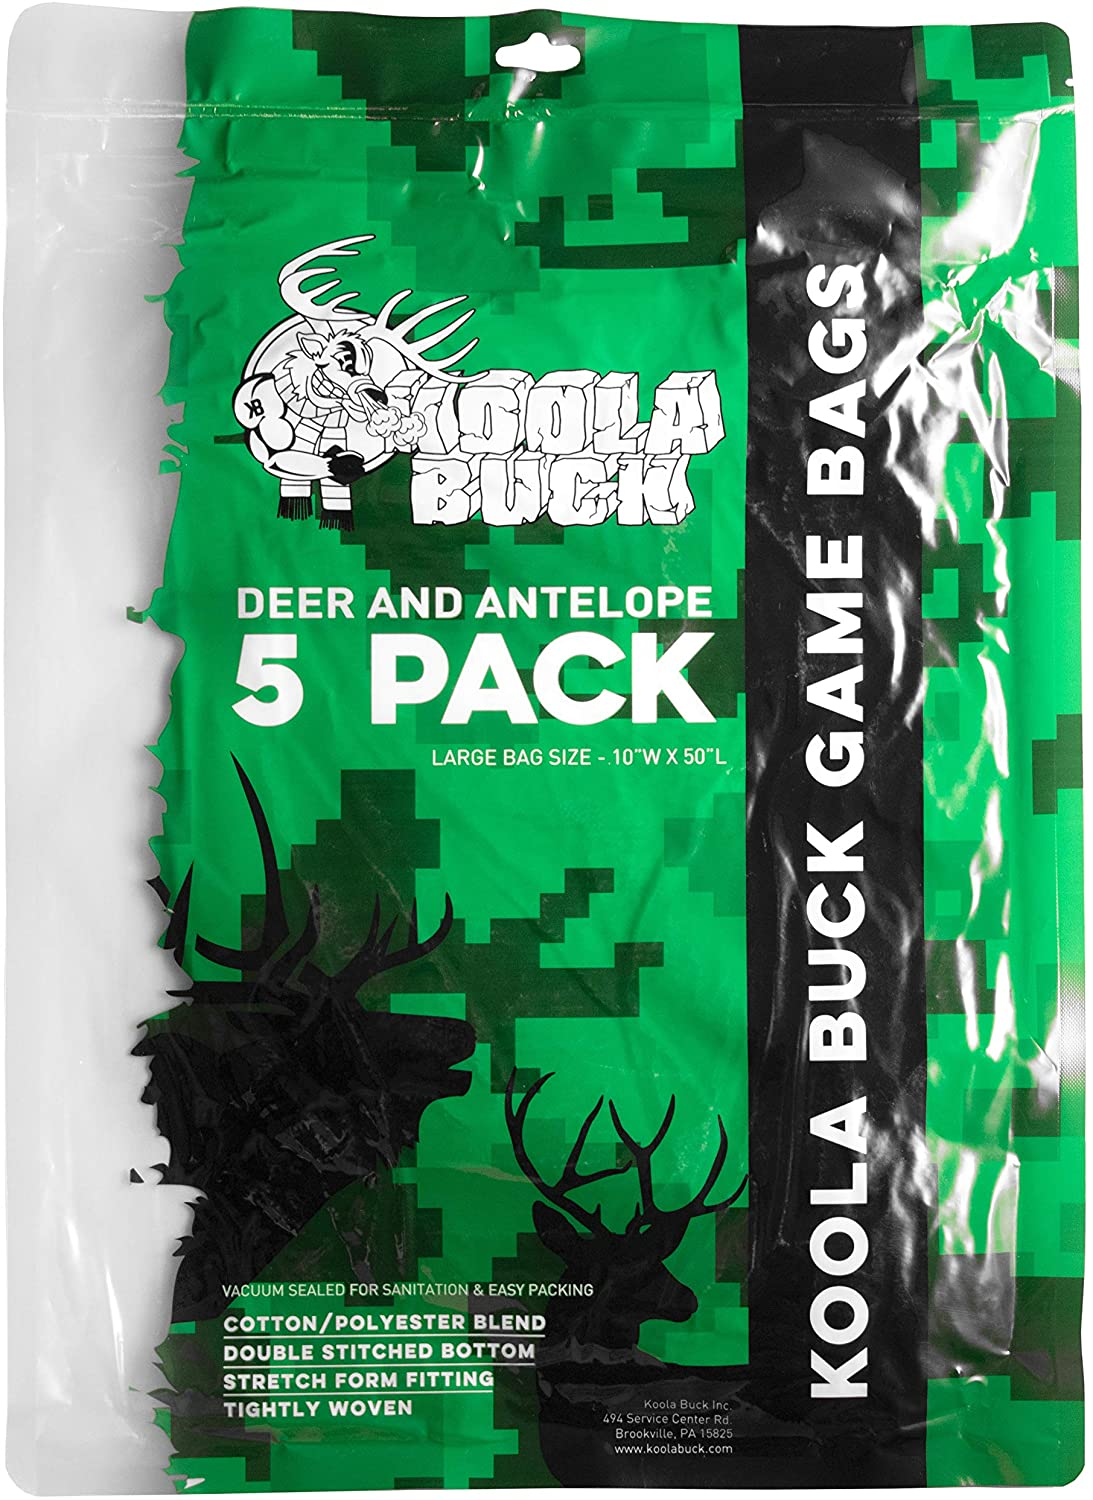 5-Pack Large Game Bags for Deer and Antelope